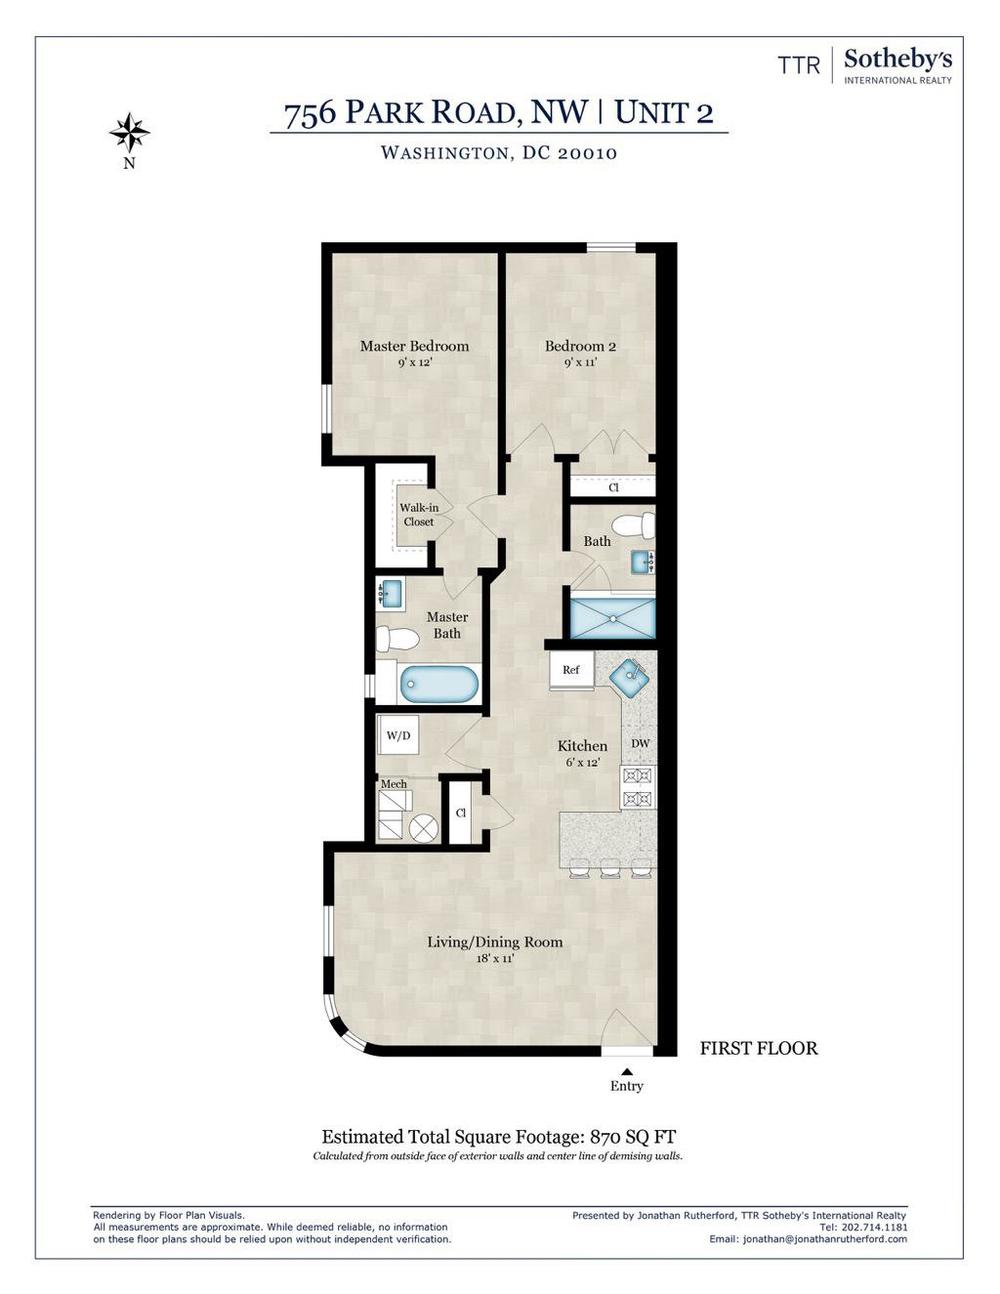 22-Floor Plans for Unit 2.jpg